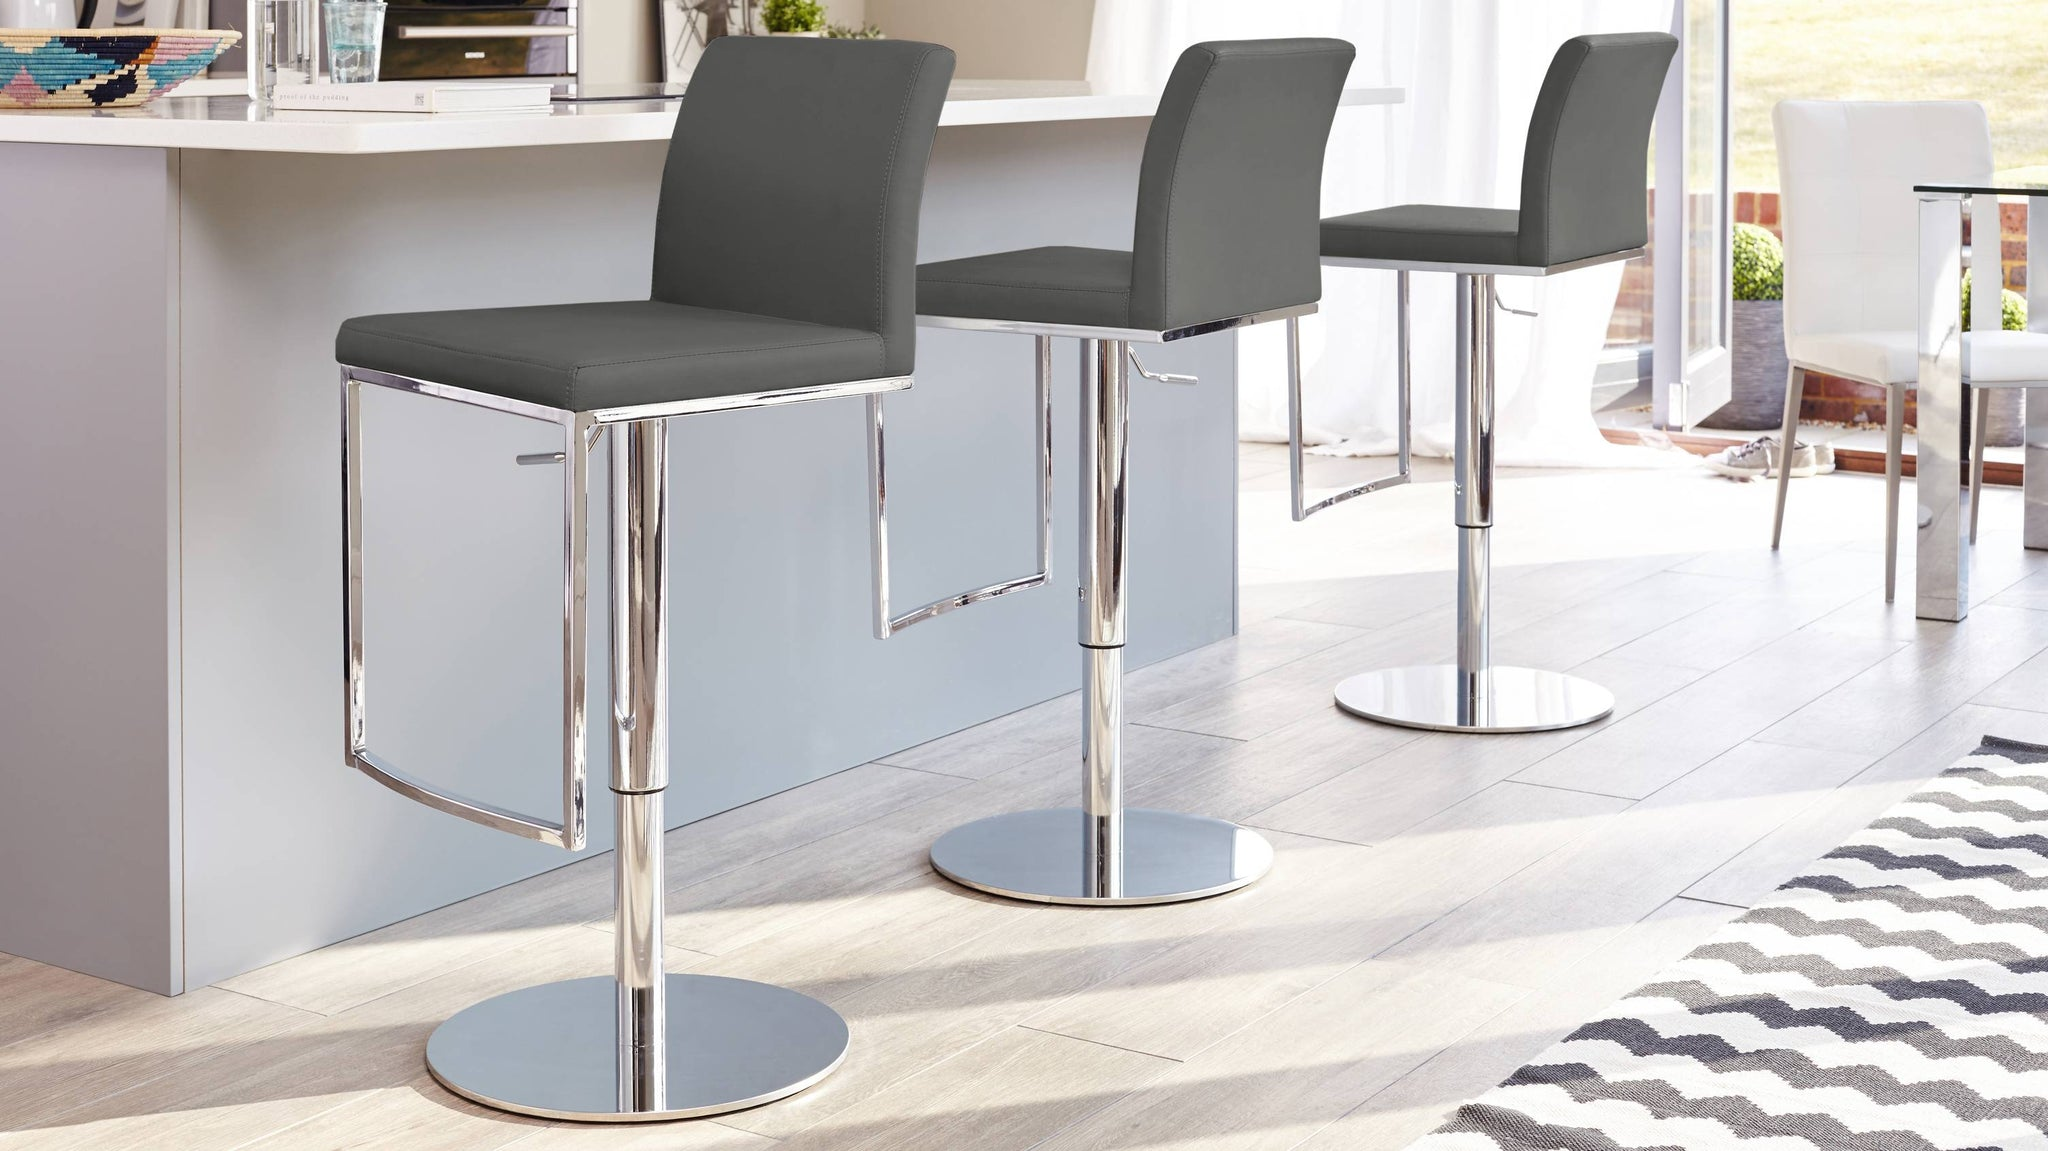 Dark Grey Gas Lift Bar Stools with Footrests